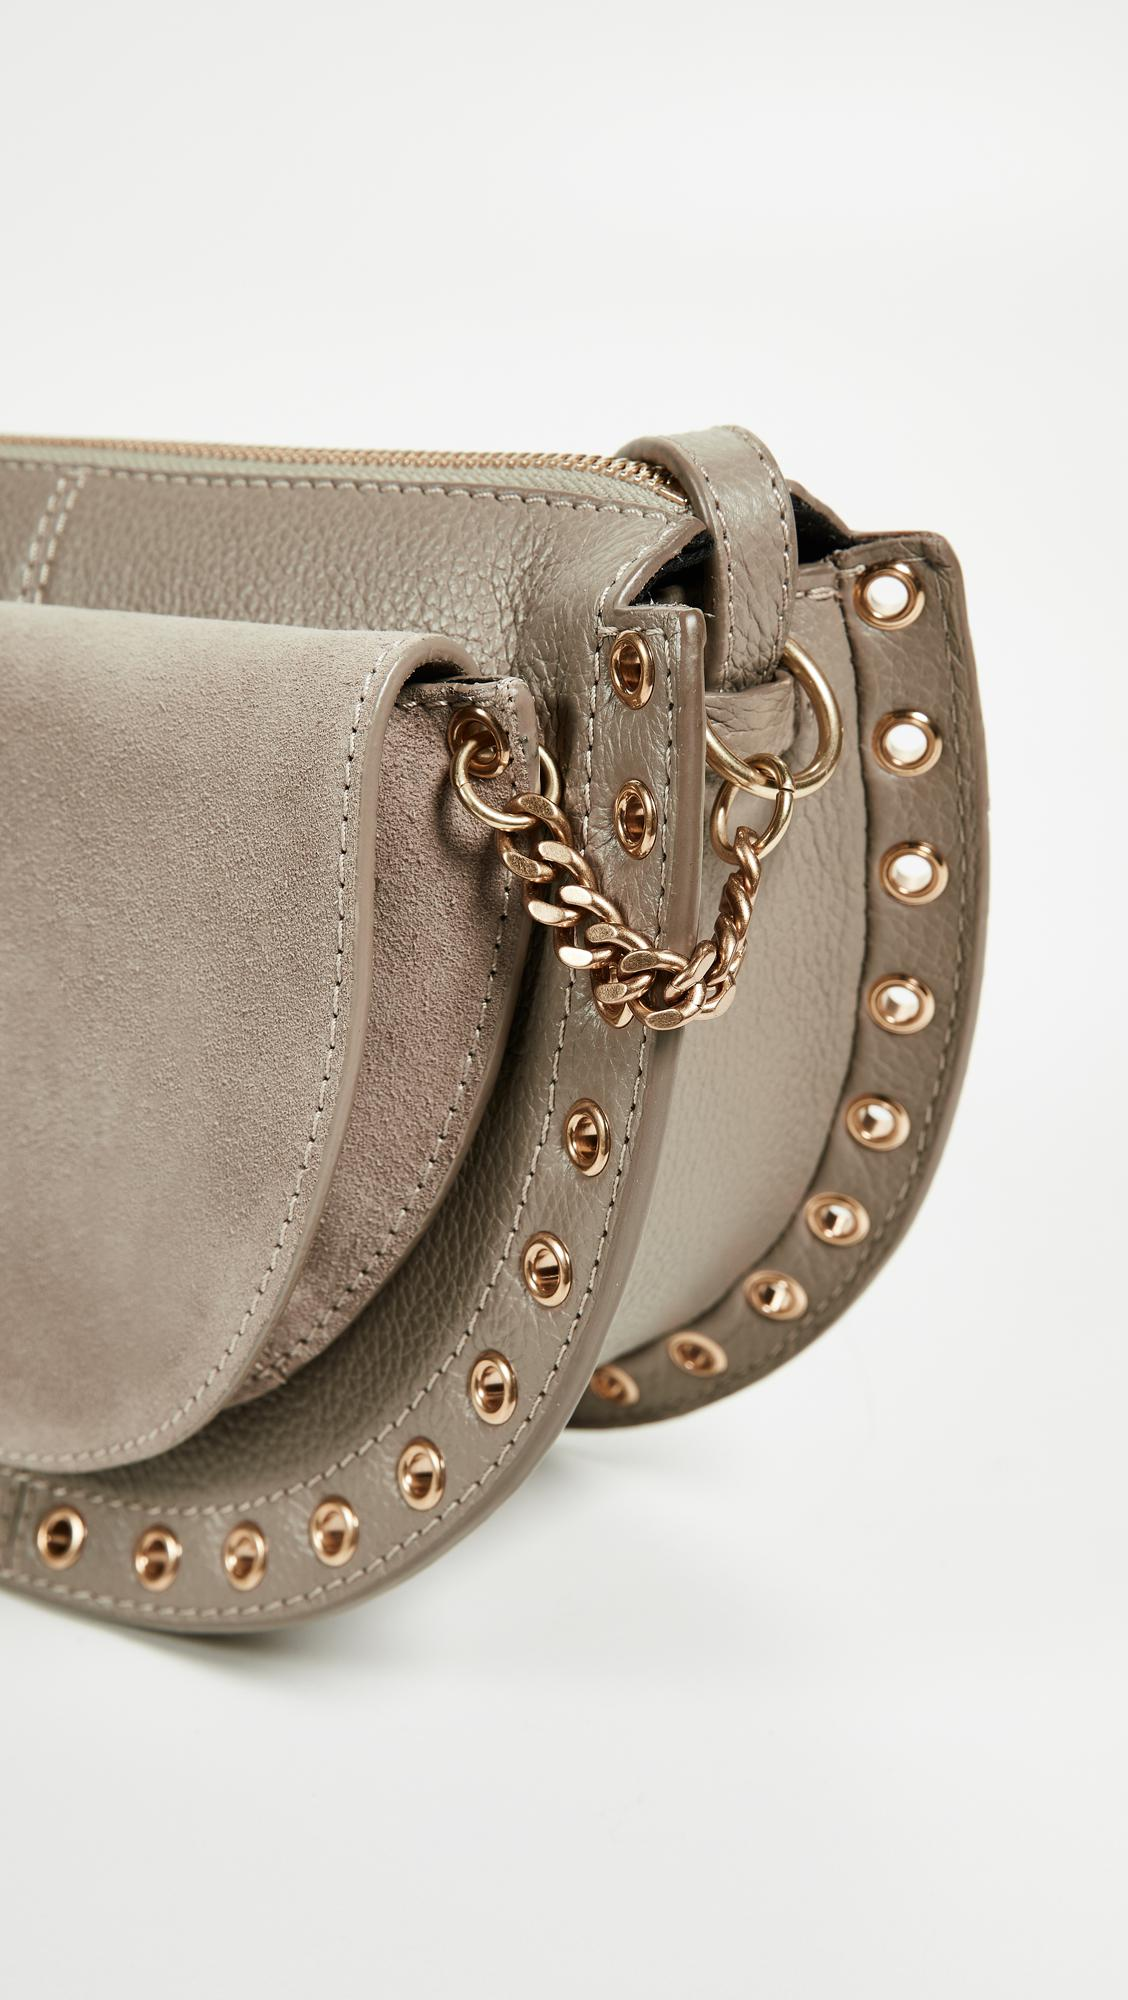 See By Chloé Leather Kriss Cross Body Bag in Grey